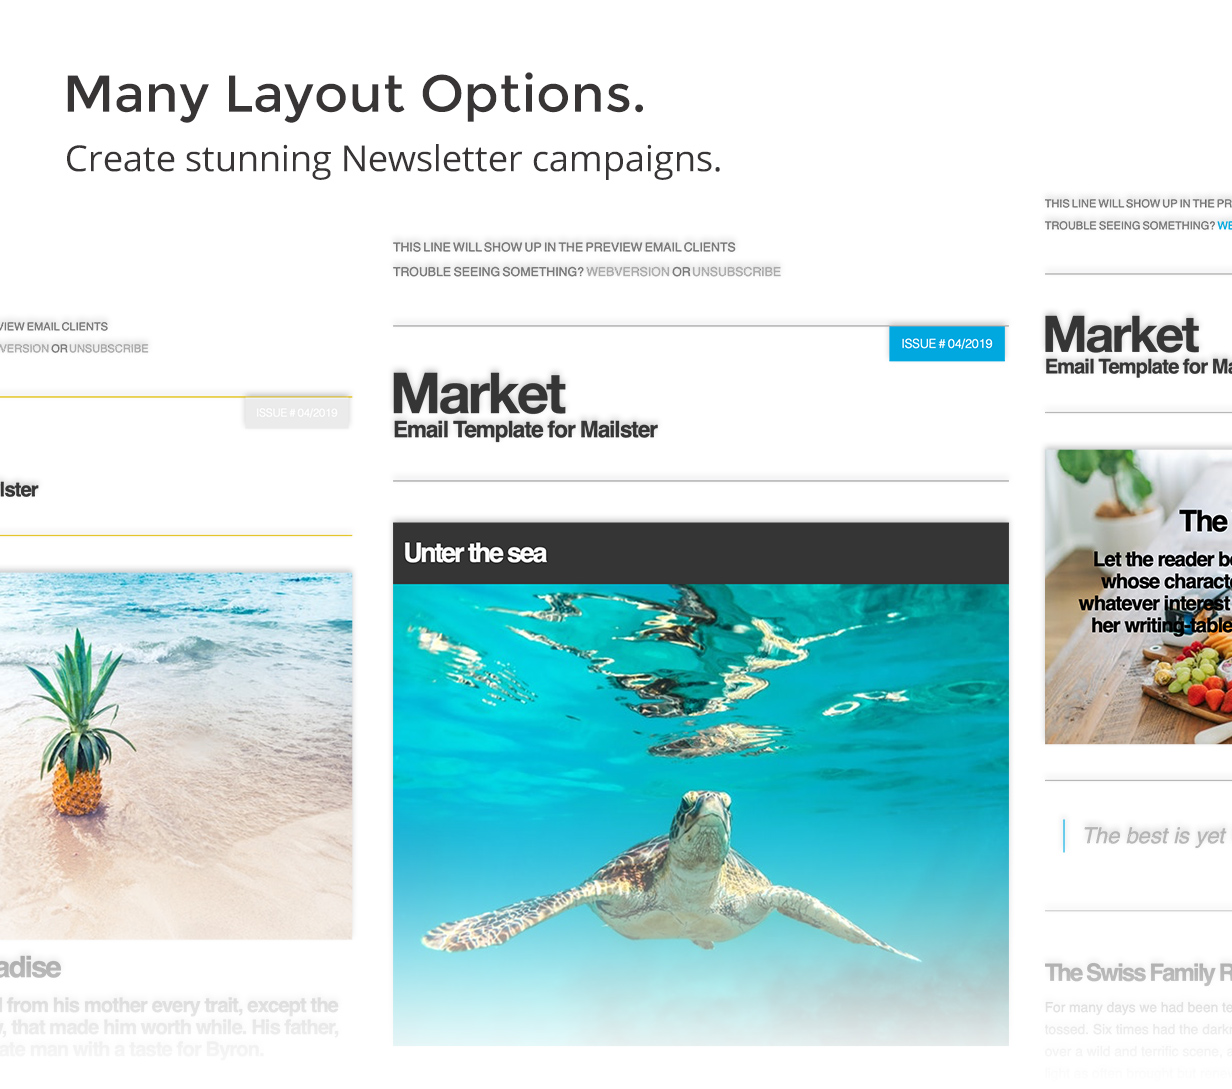 Market - Email Template for Mailster - 7